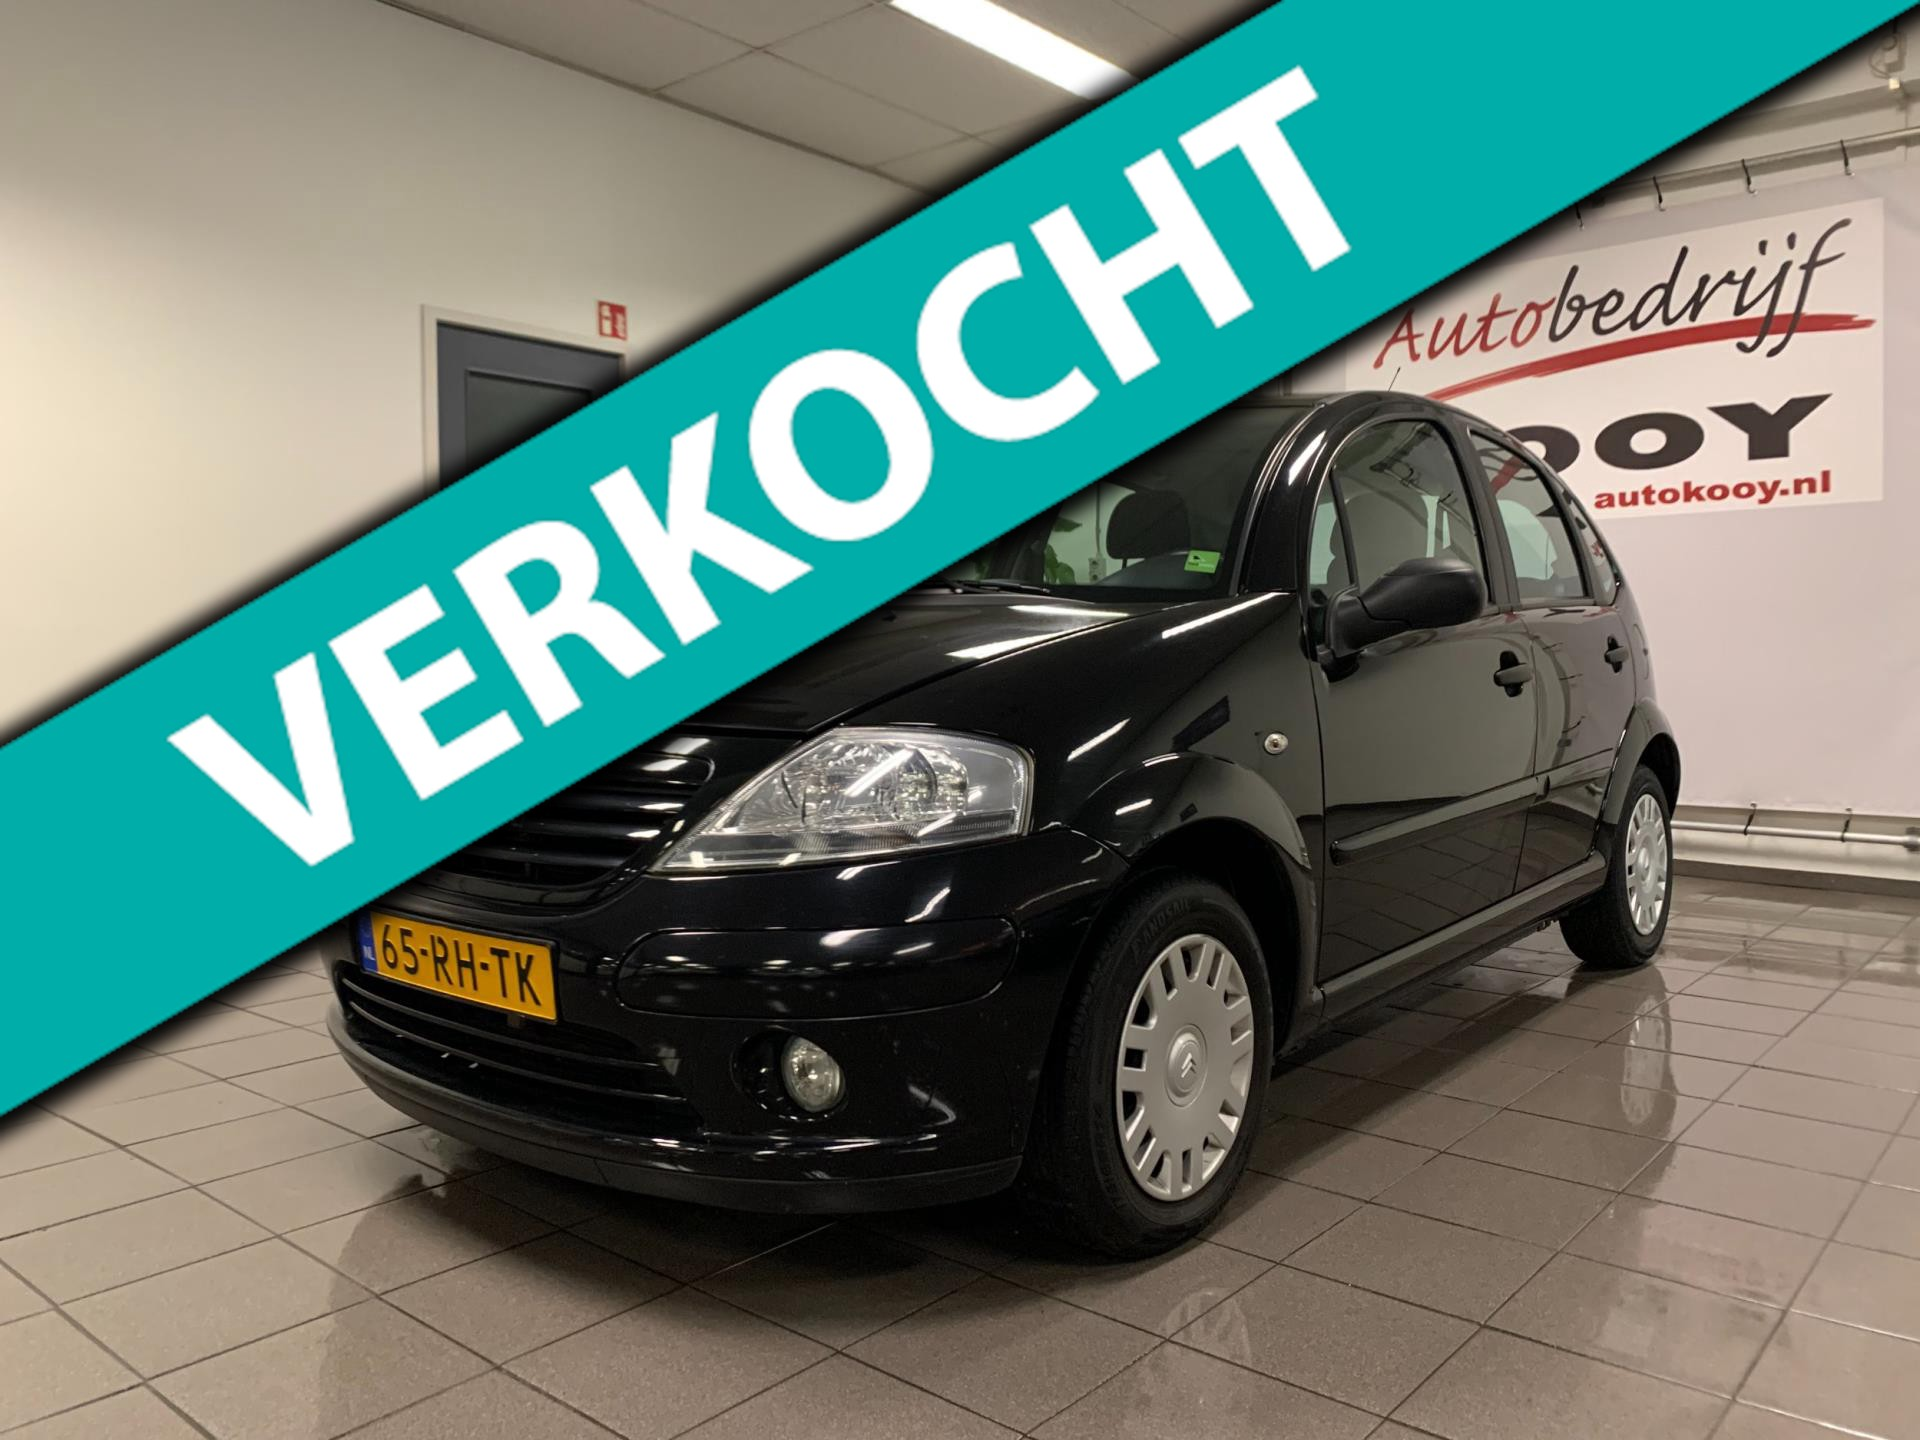 Citroen C3 1.4i Attraction * Airco / Cruise control / 42.069 km + NAP *